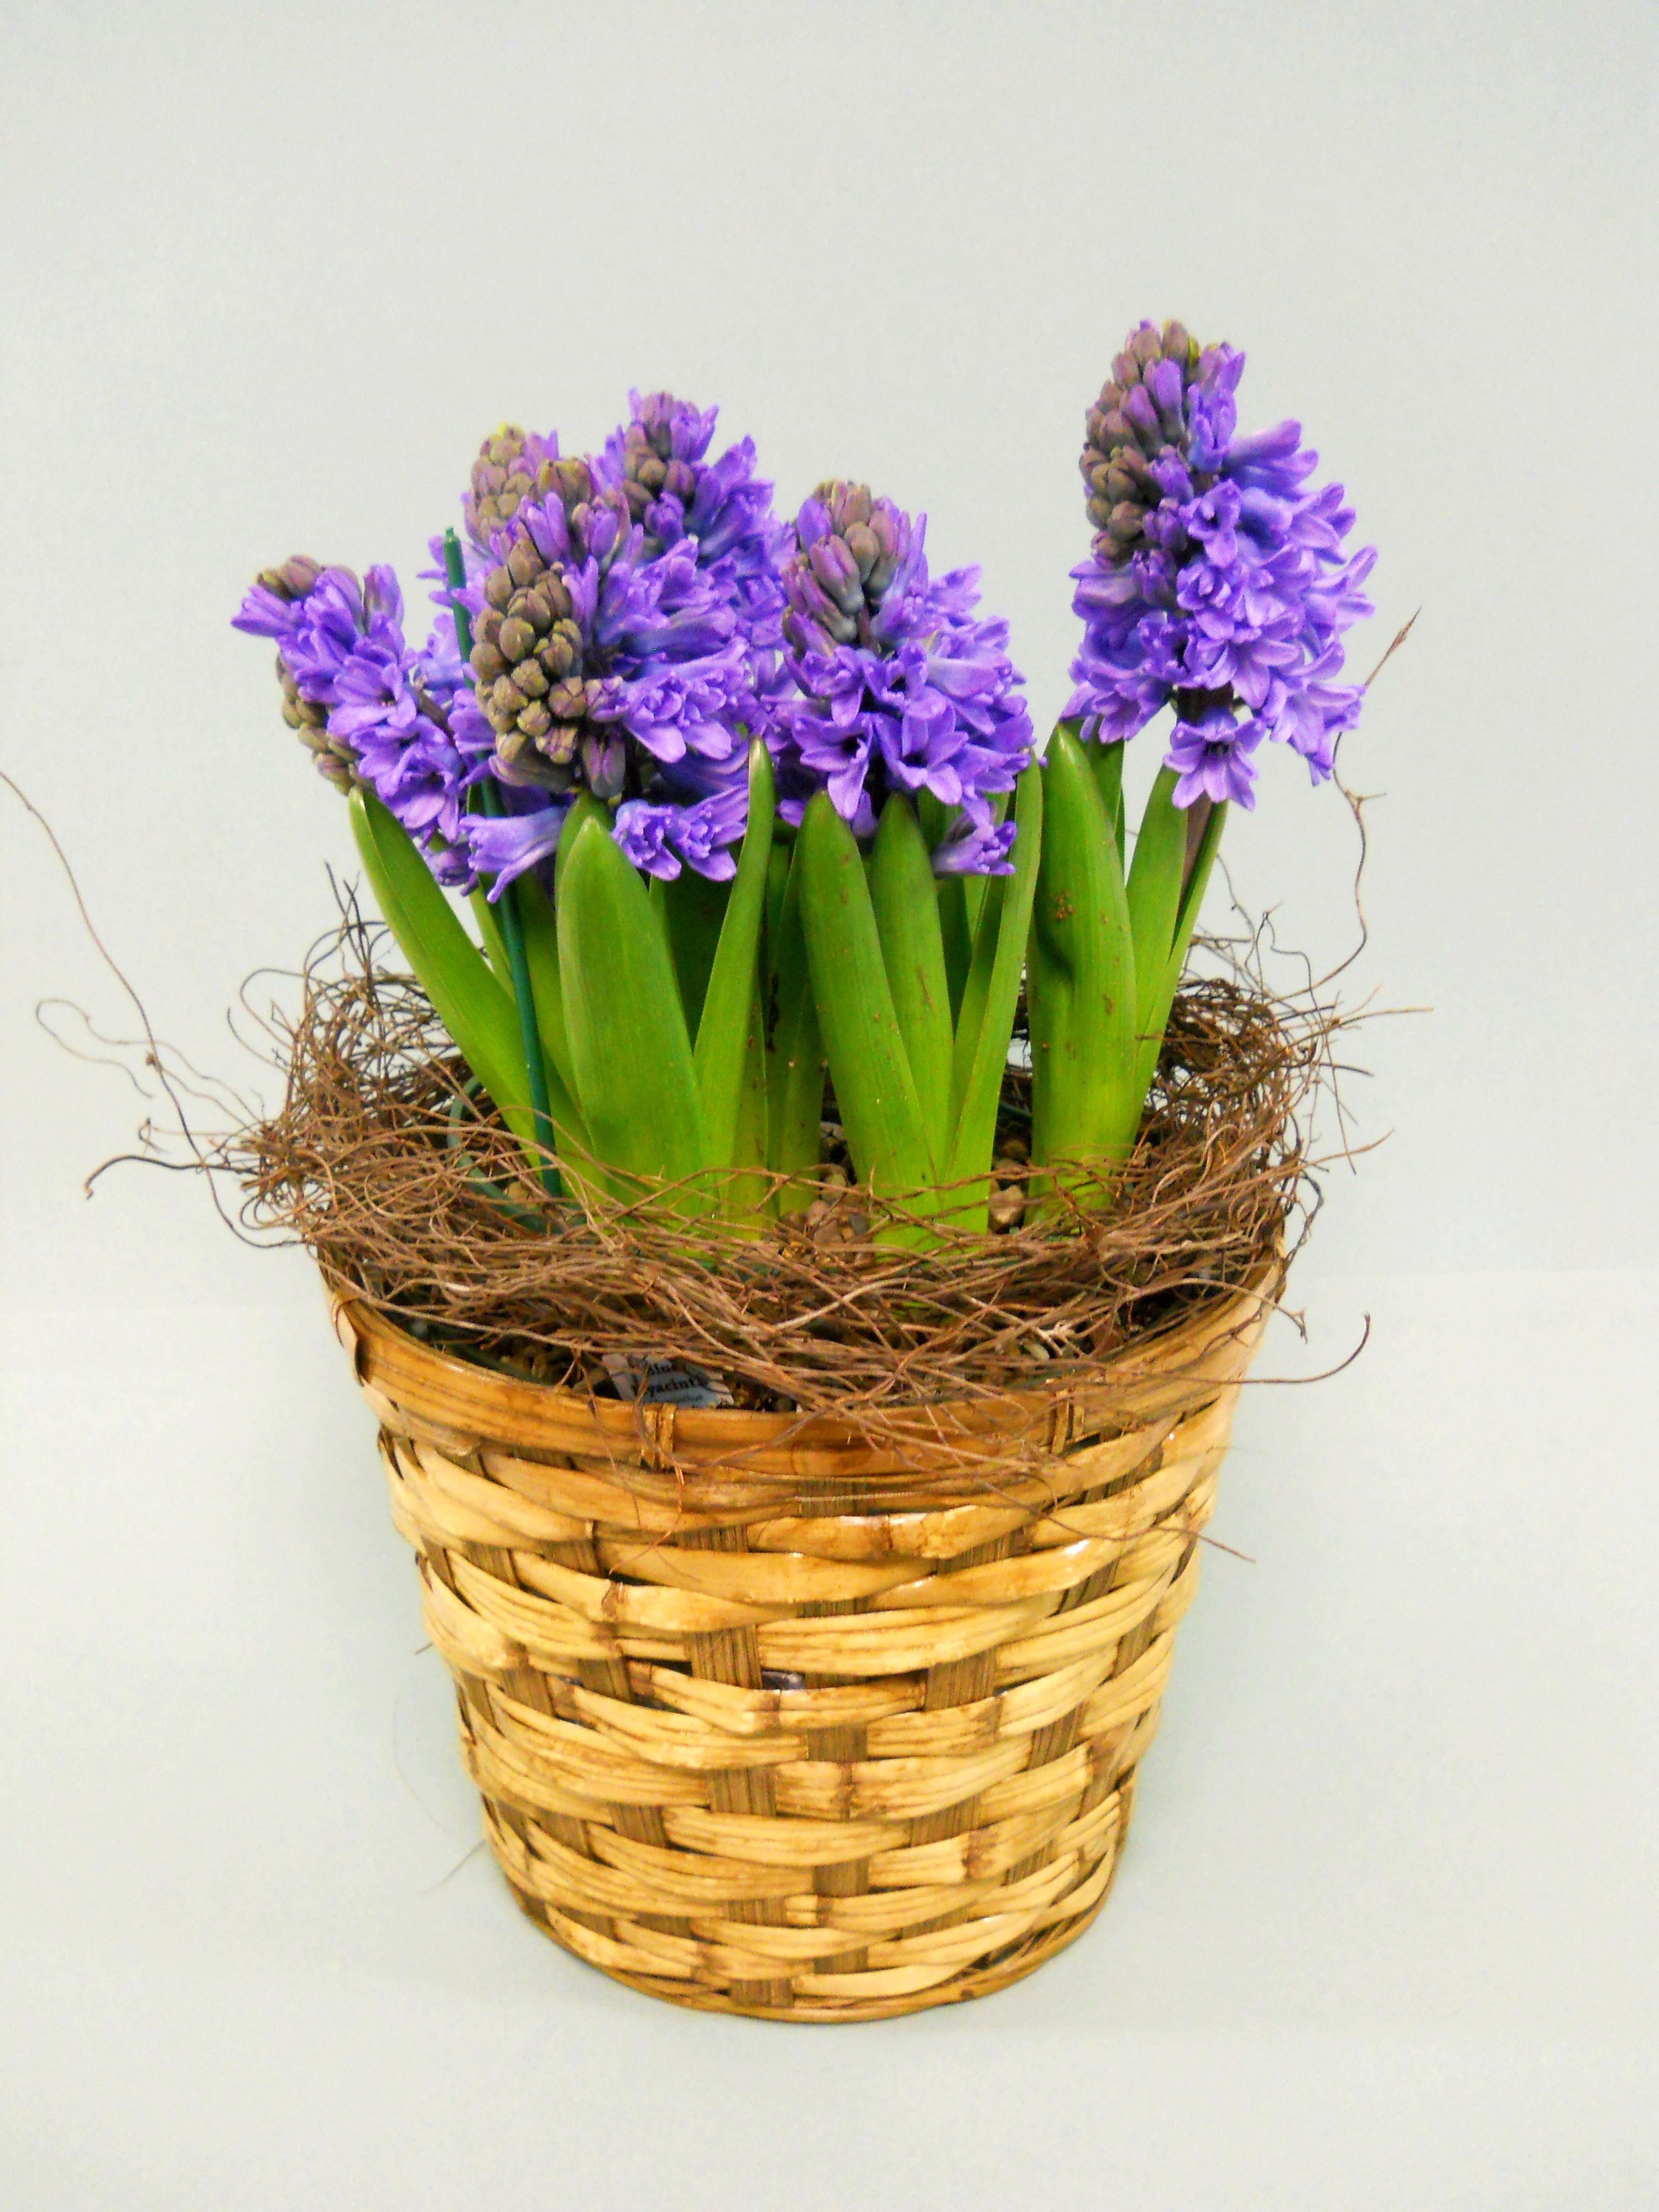 It's hard to find a more elegant or sweetly scented bloom than a Hyacinth! Nestled into a Spring tin are lovely Hyacinth bulbs. It won't take long before the blooms are standing tall, brightening any setting and offering up their intoxicating perfume! $35.99